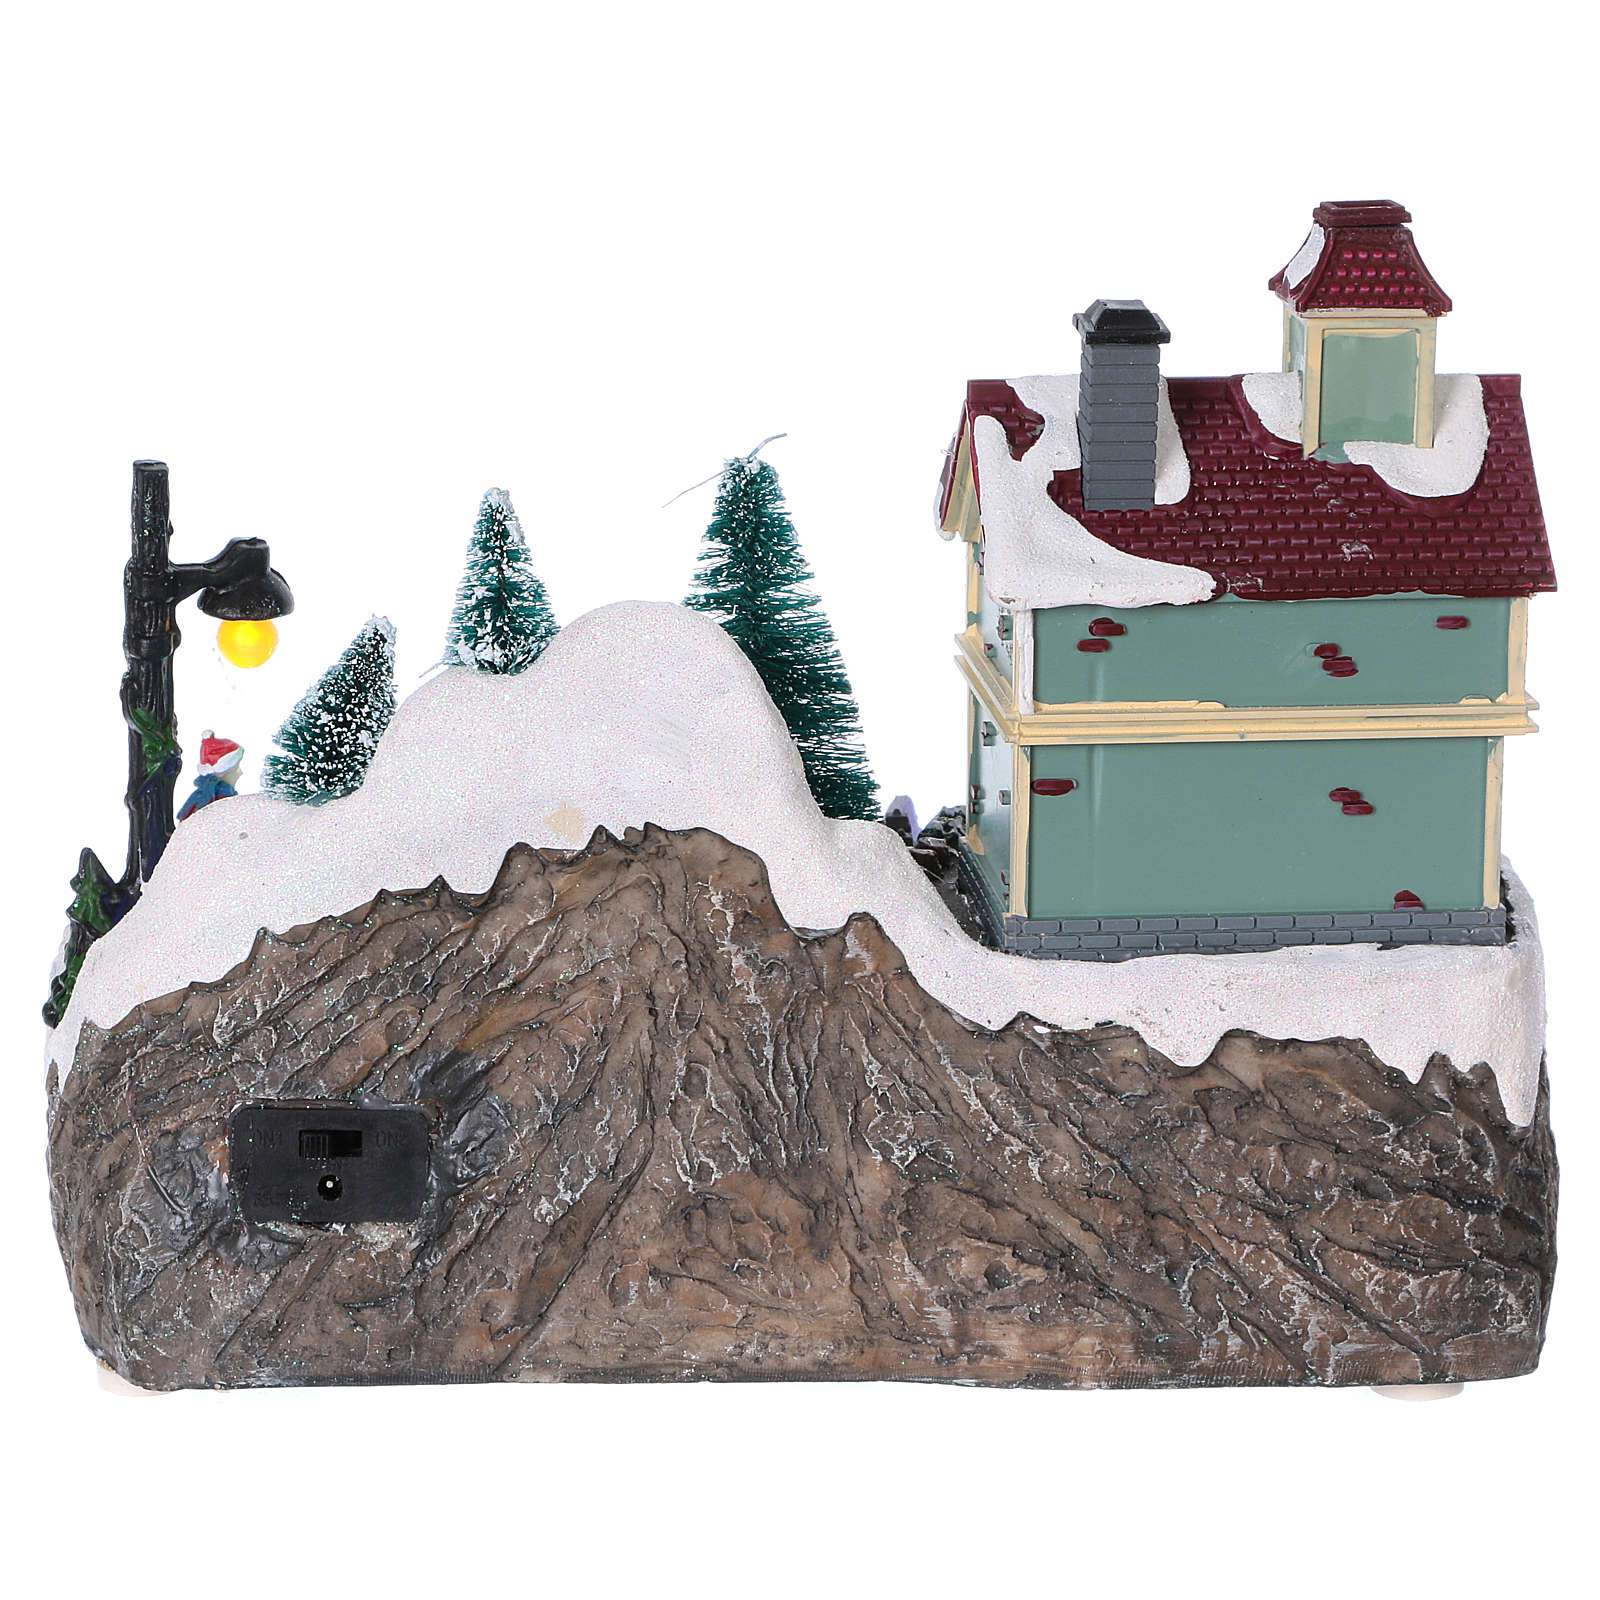 Illuminated Christmas village with animated ice skaters and toy shop 20x25x16 cm 3